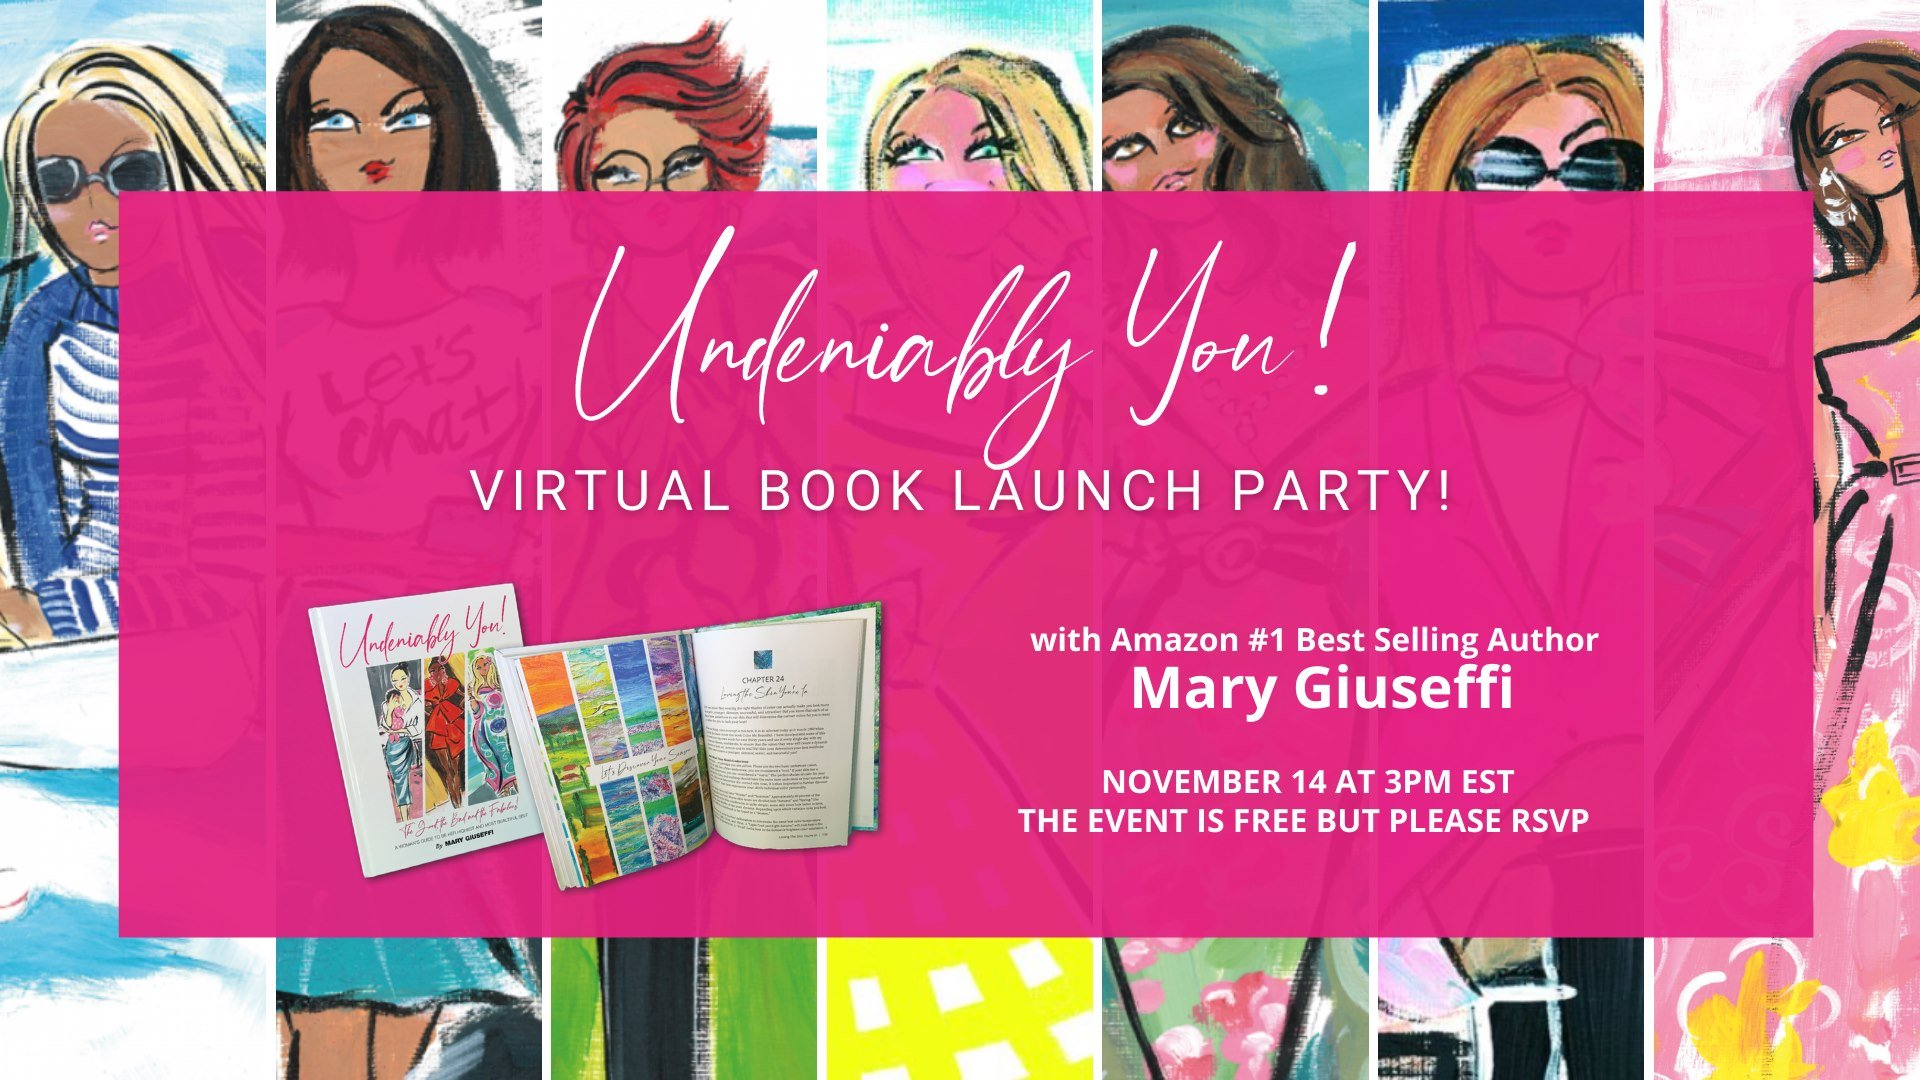 Virtual Book Launch Party Undeniably You Mary Giuseffi